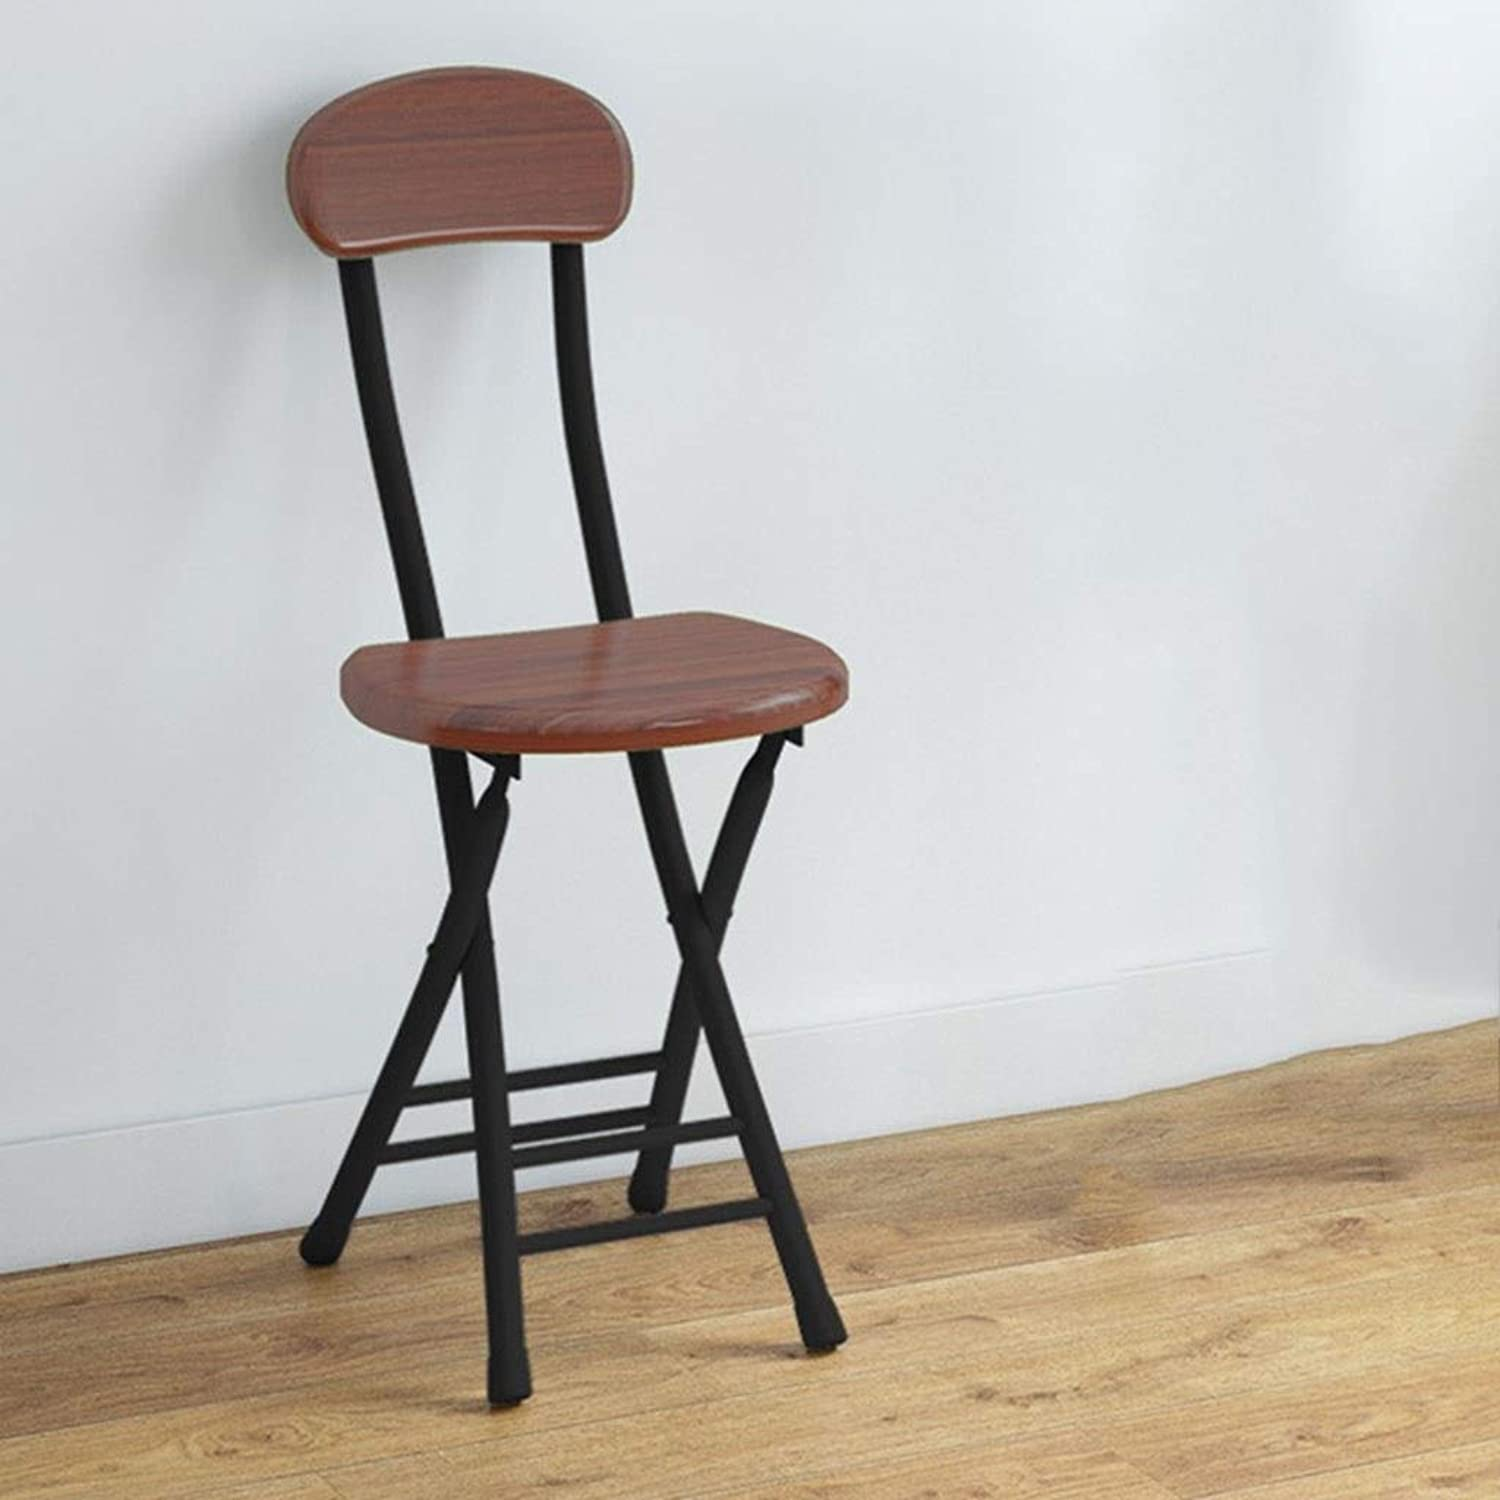 JKPA - Chairs Folding Chair Adult Bar Backrest Stool Modern Simple Home Chair Simple Portable Creative Fashion Table Stool ( color   I )